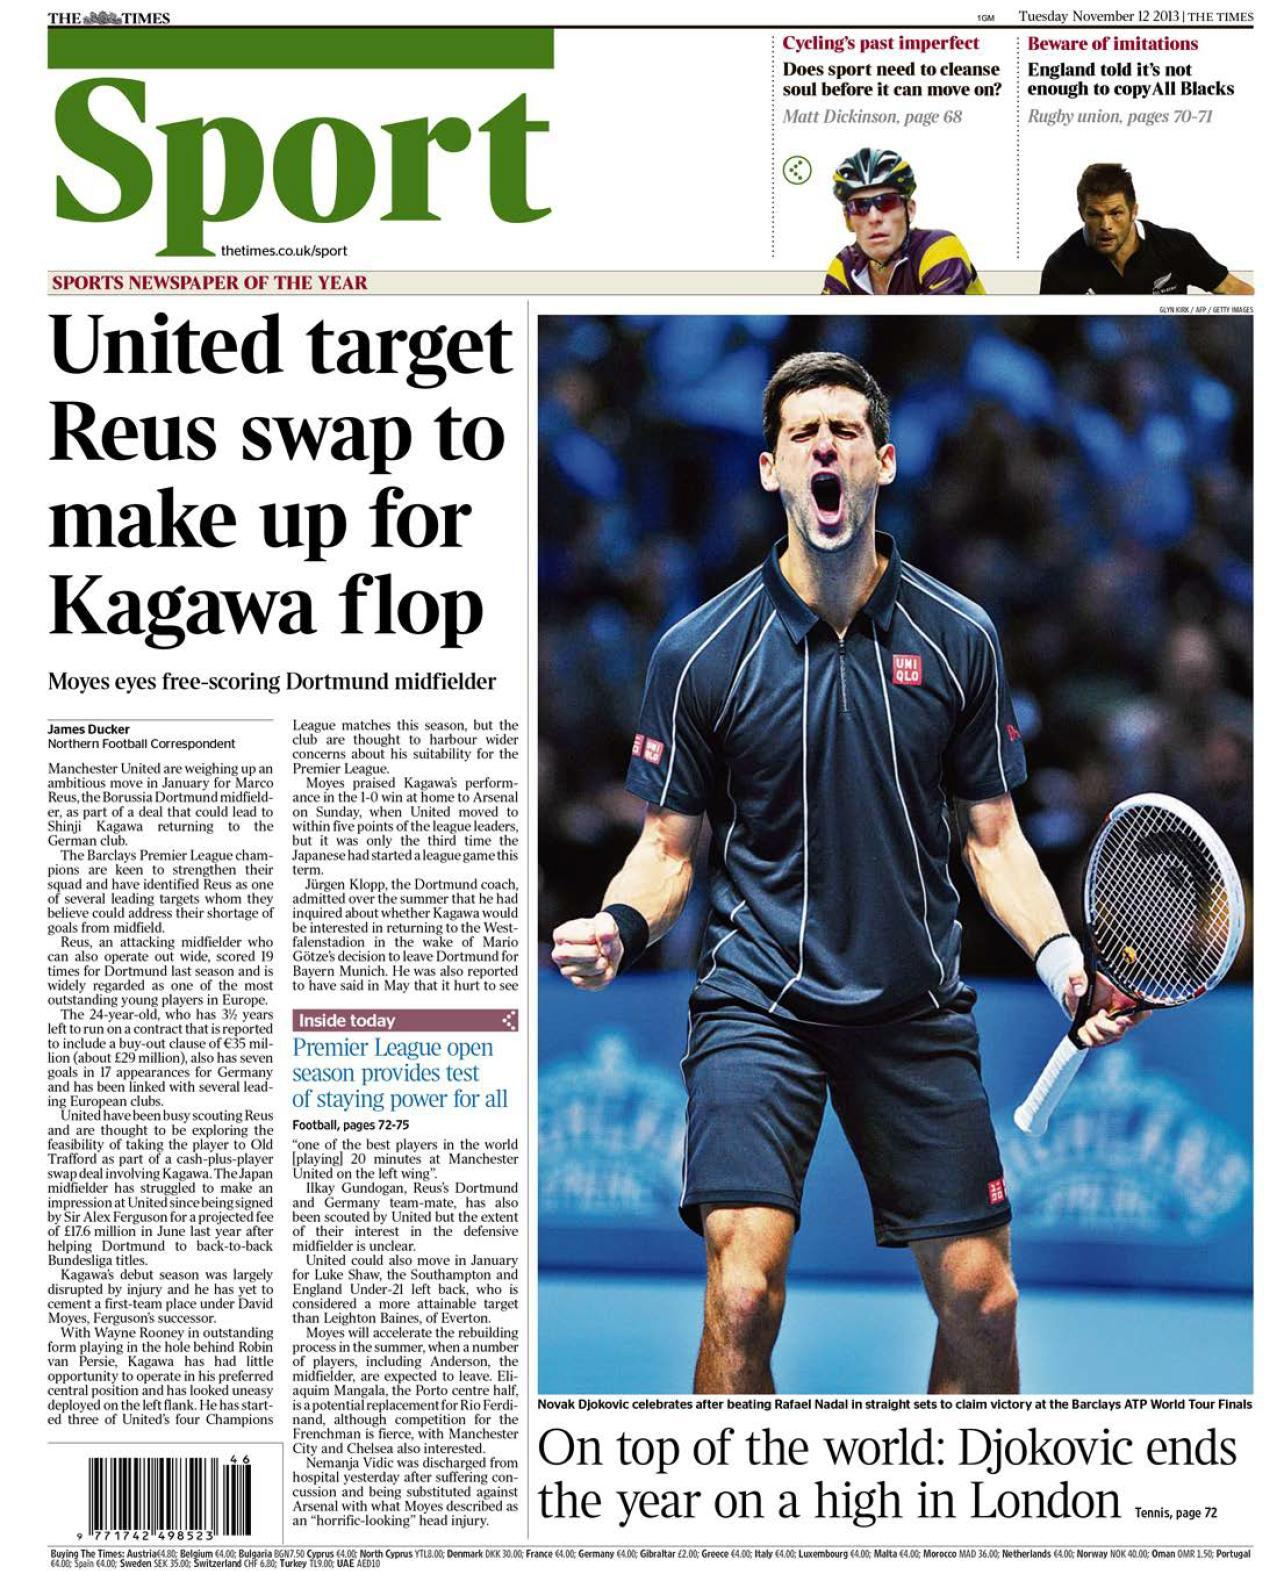 Manchester United consider swapping Shinji Kagawa for Borussia Dortmunds Marco Reus [The Times]